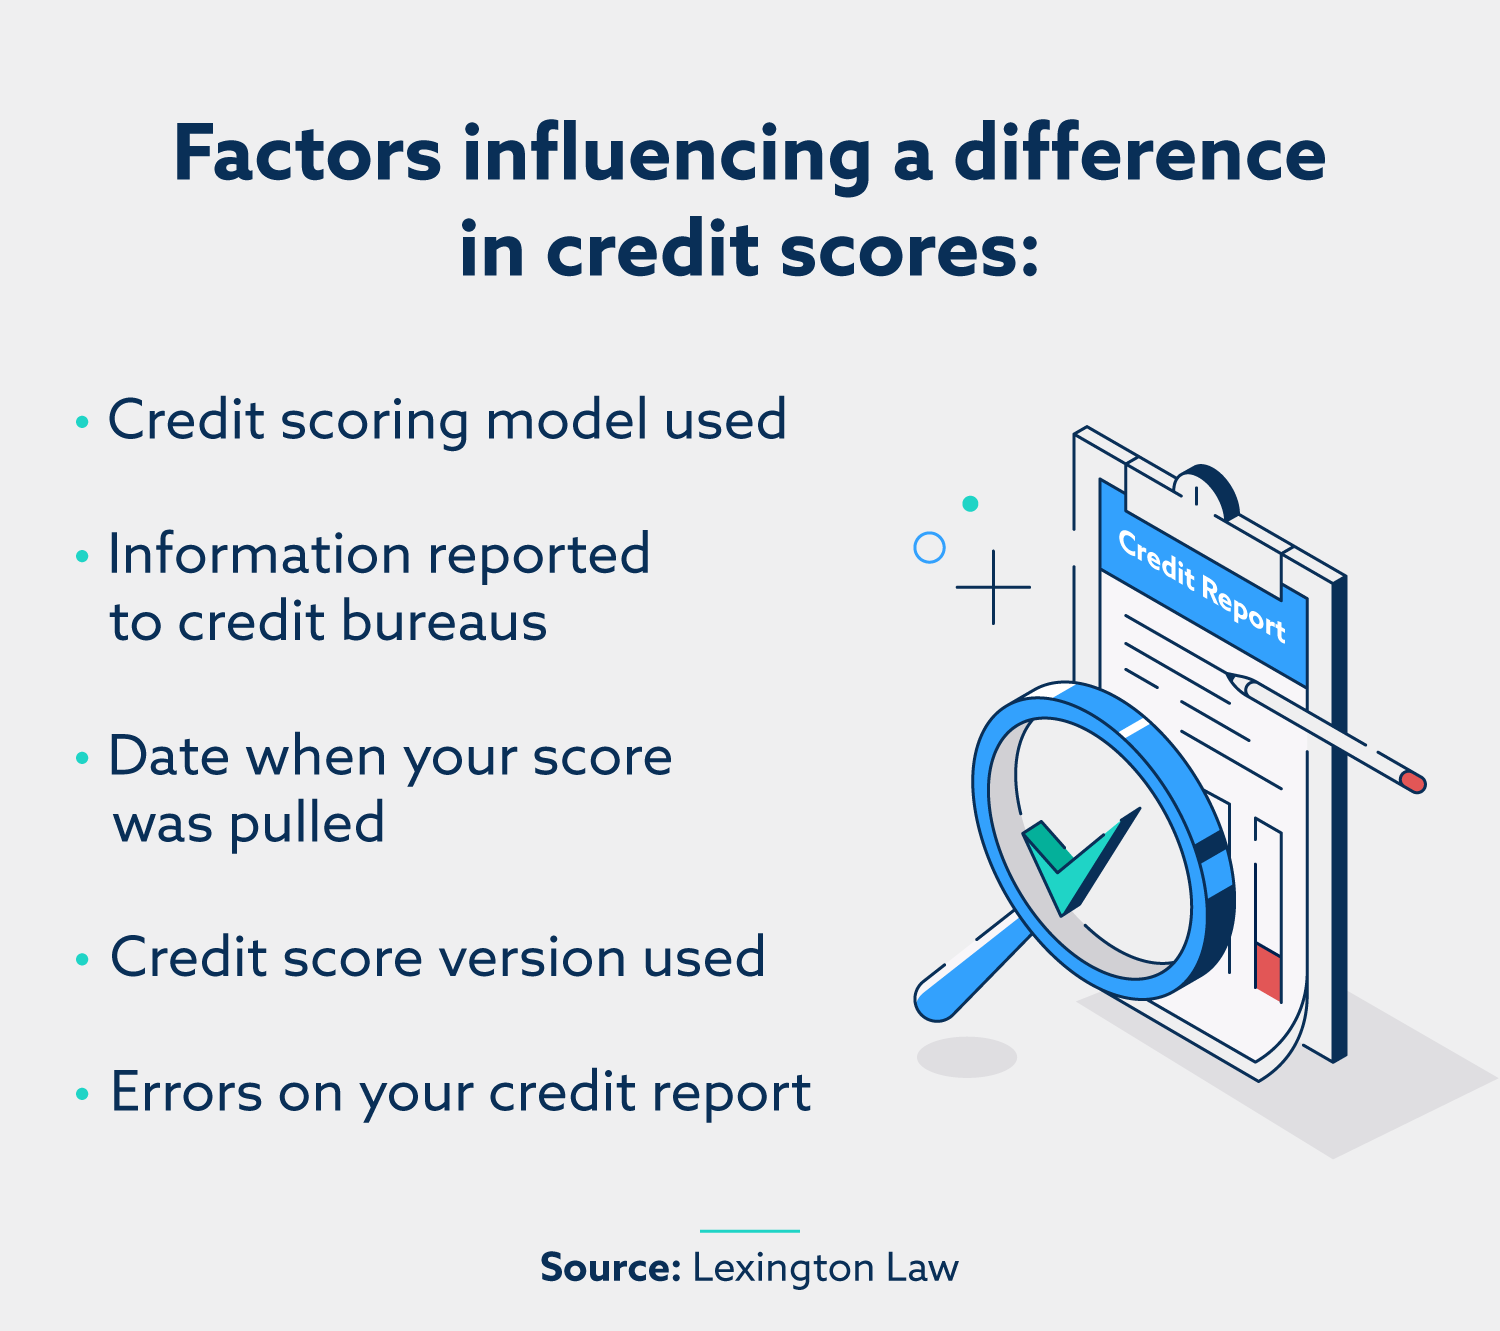 Factors influencing a difference in credit scores: credit scoring model  used, information reported to credit bureaus, date when your score was pulled, credit score version used, errors on your credit report.